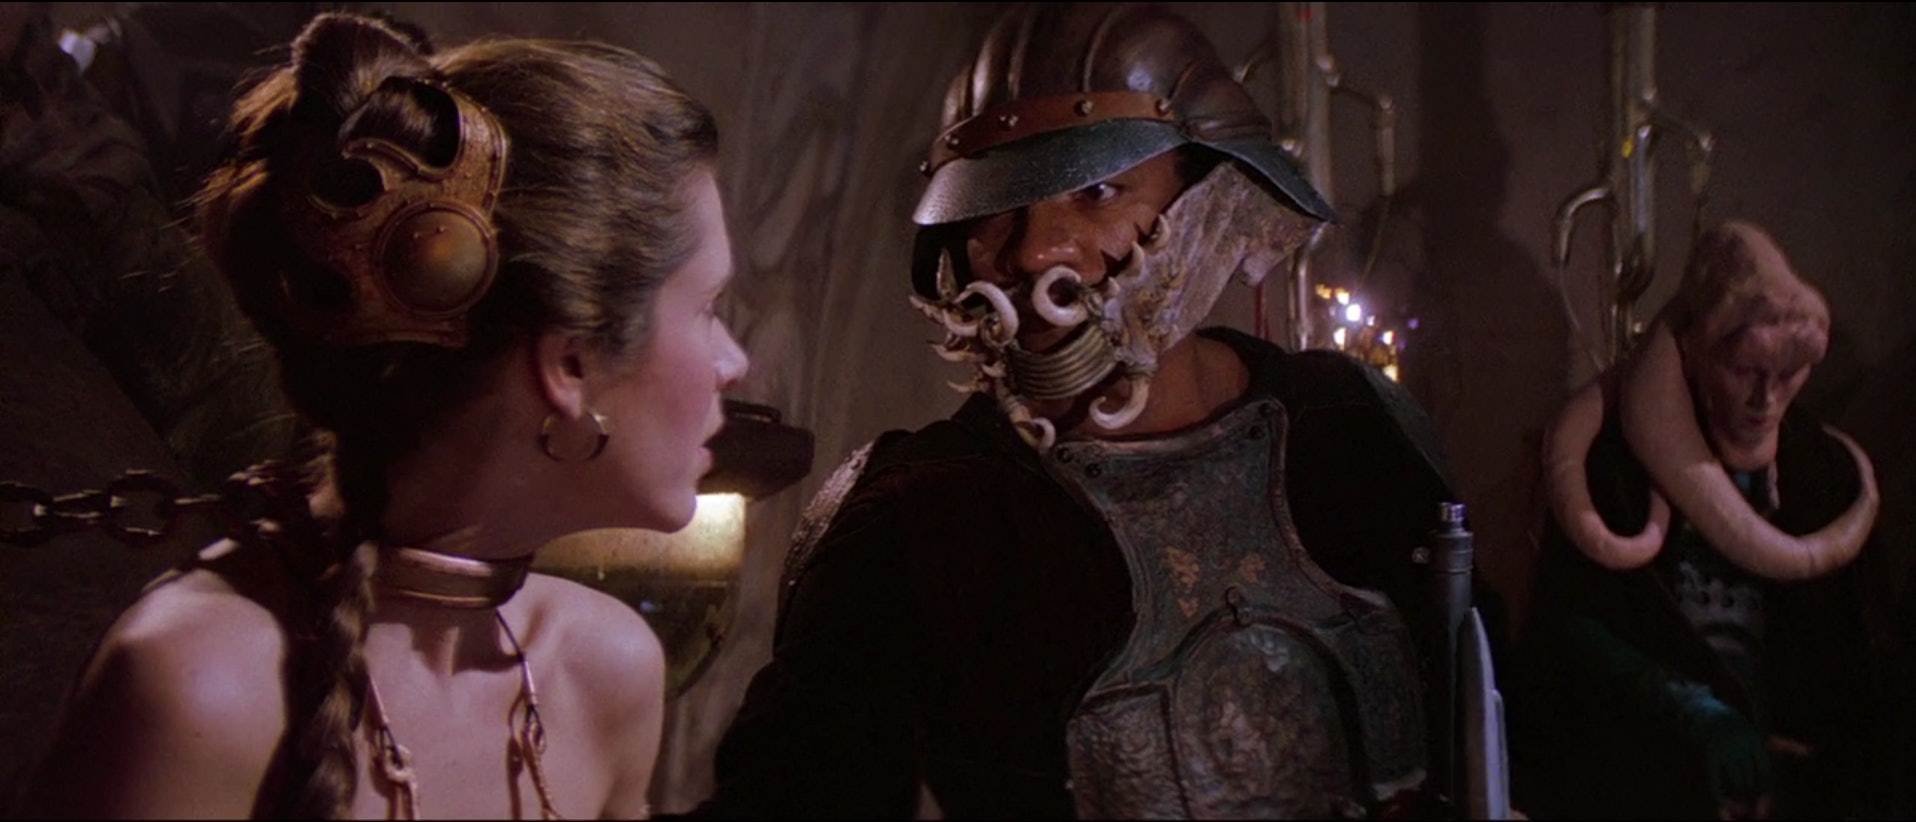 Lando's disguise in 'Return of the Jedi' is clearly something he's had for awhile.